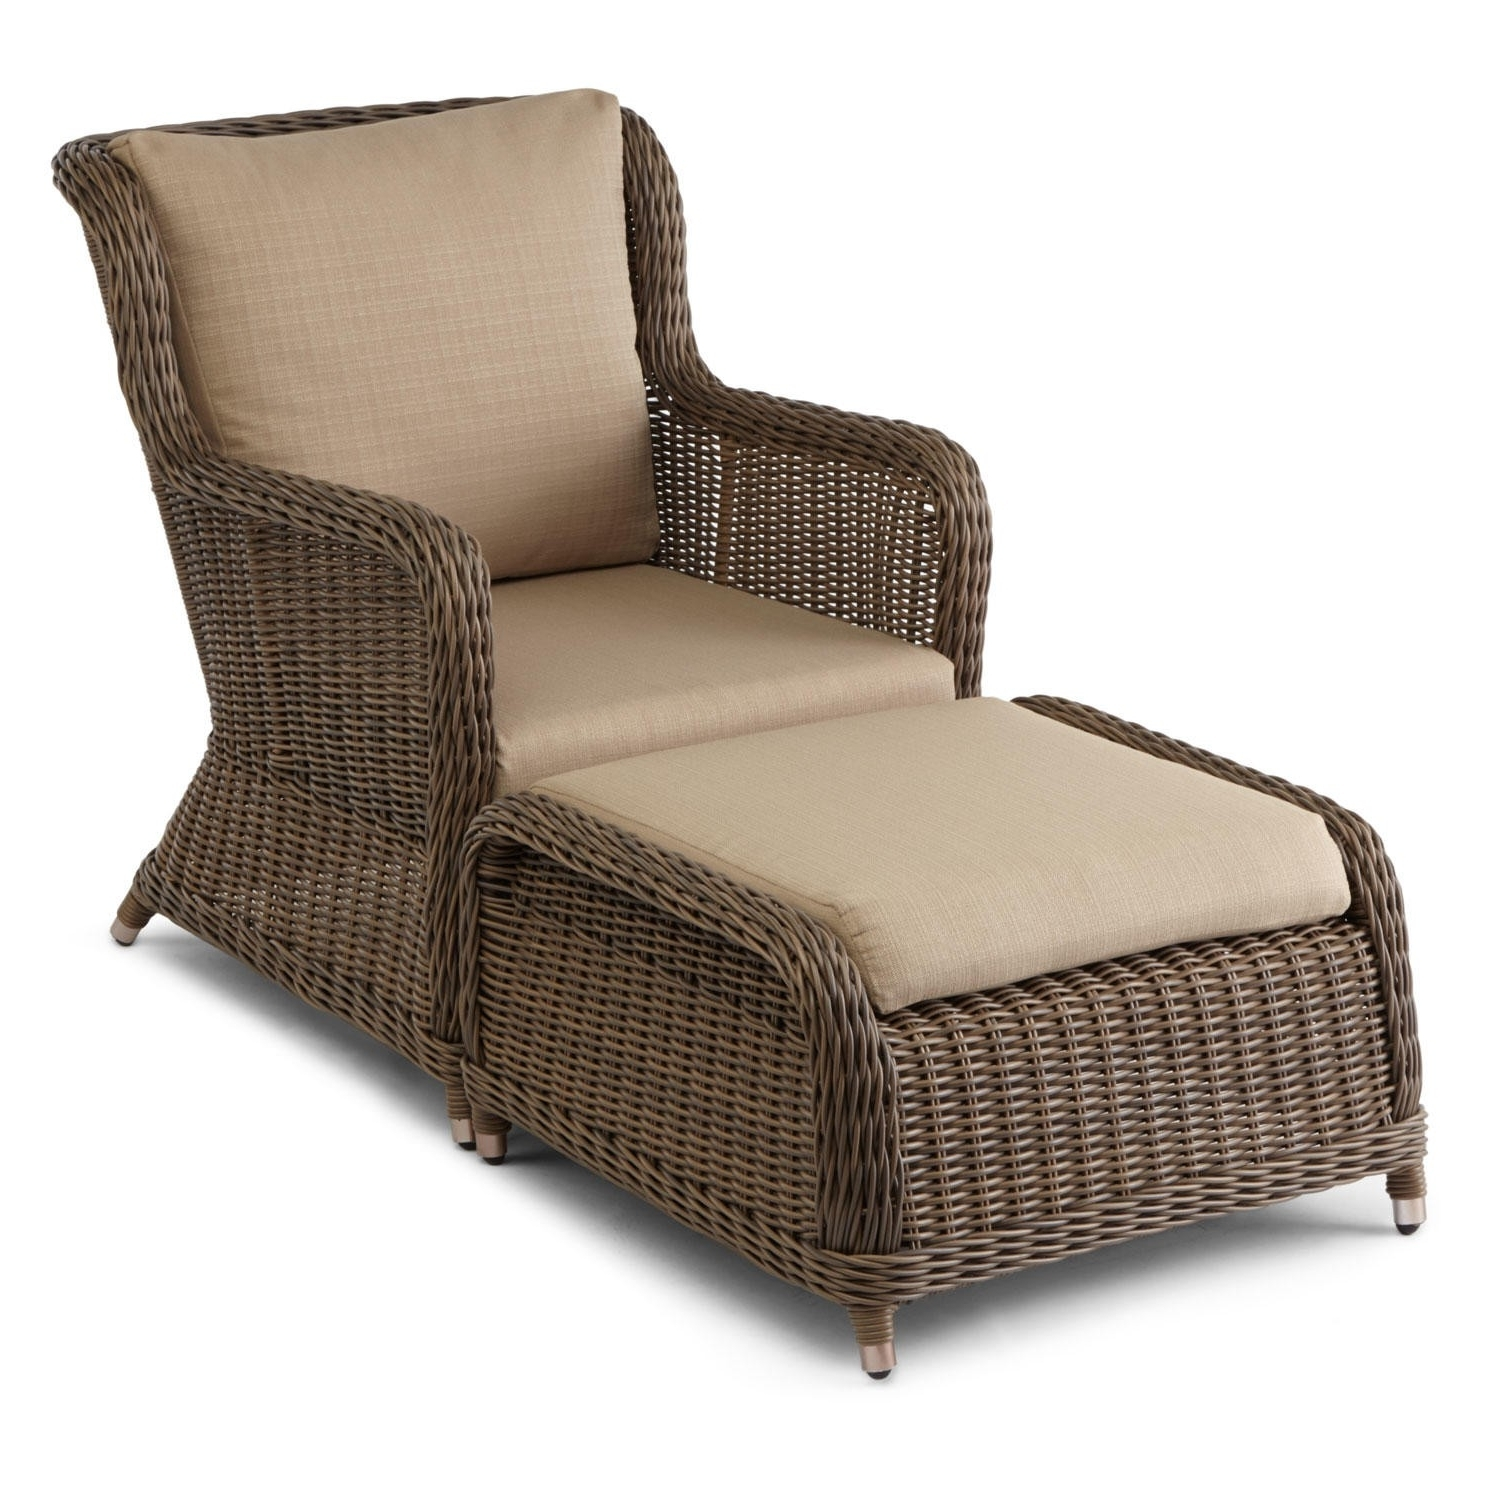 Wicker Chair With Ottoman – Modern Chairs Quality Interior 2017 Within Latest Chairs With Ottoman (View 15 of 15)